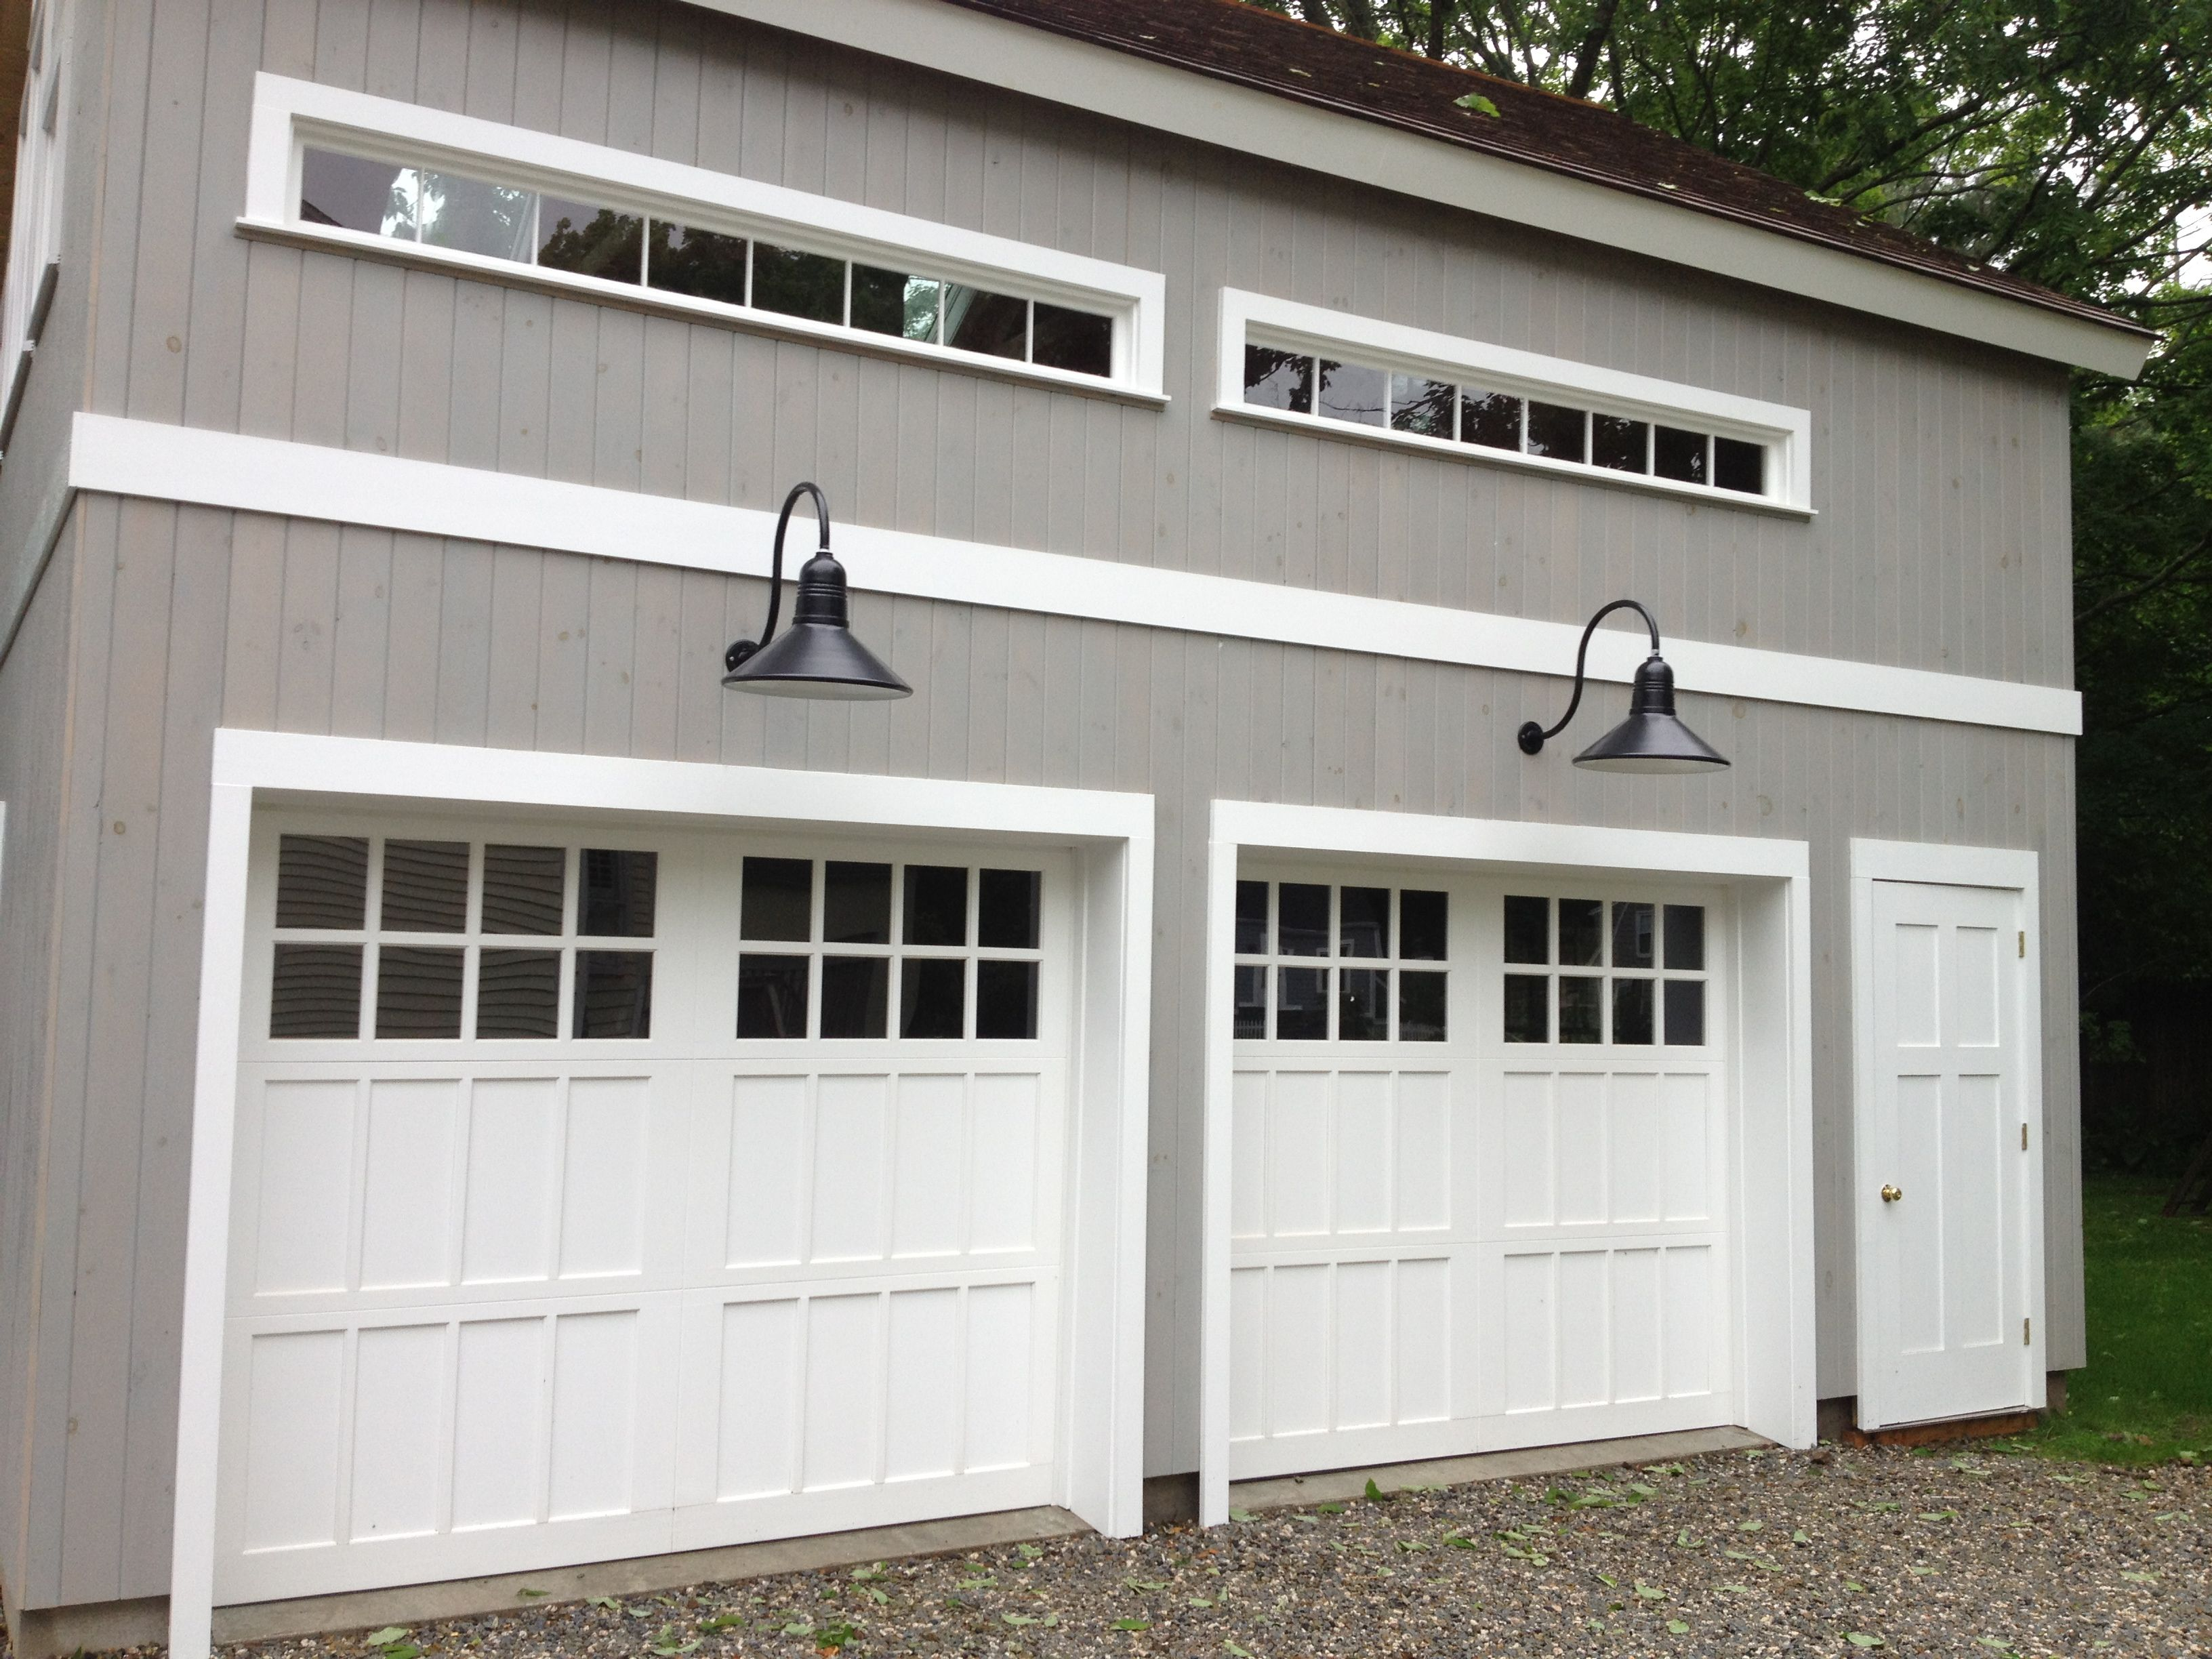 size graceful service overhead interior replacement of companies how replace cool opener to company ga georgia atlanta garage door full